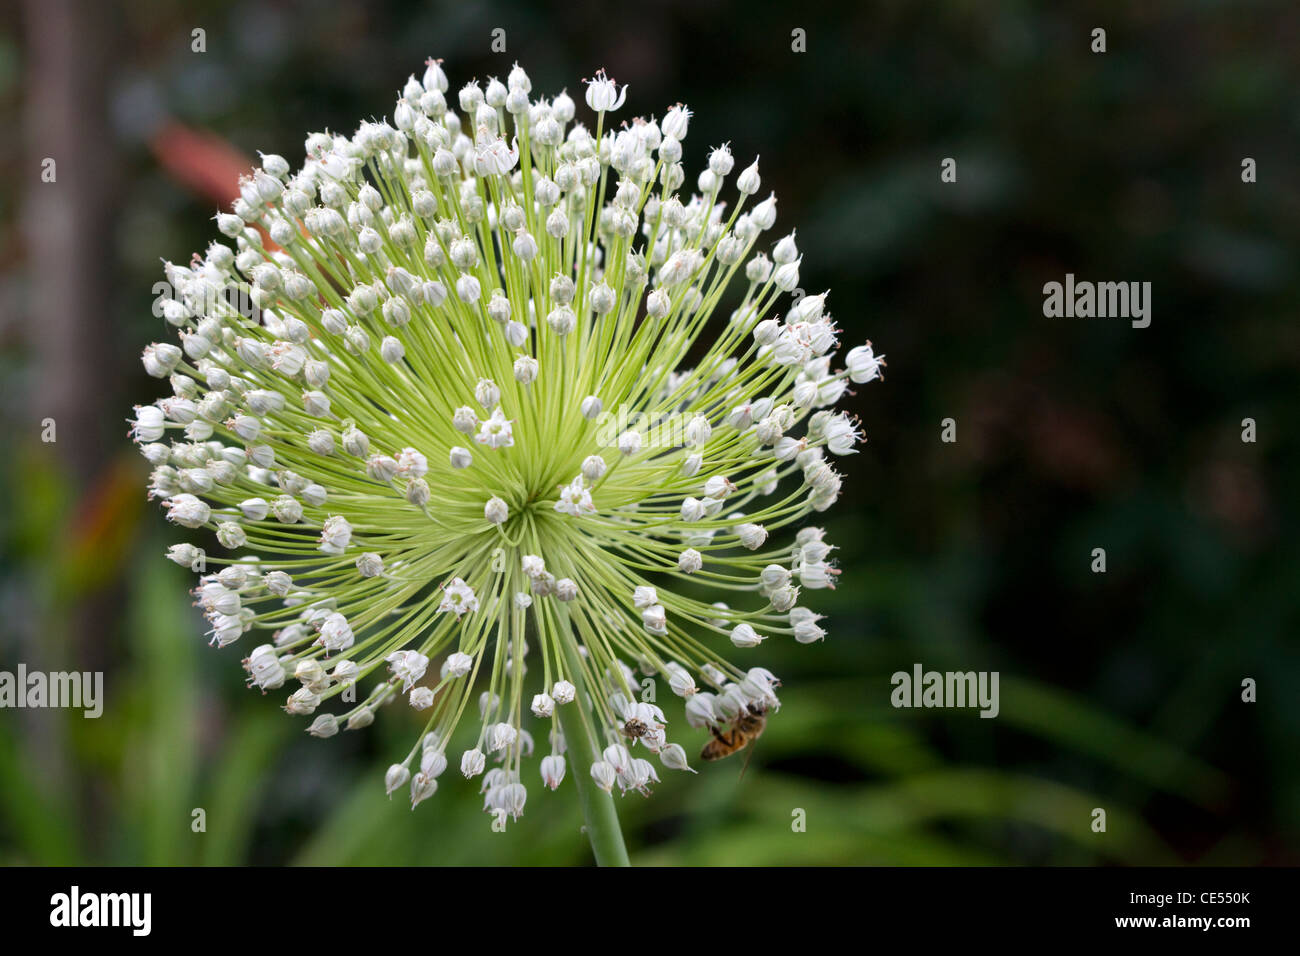 The bulbous flower of a garlic plant. - Stock Image